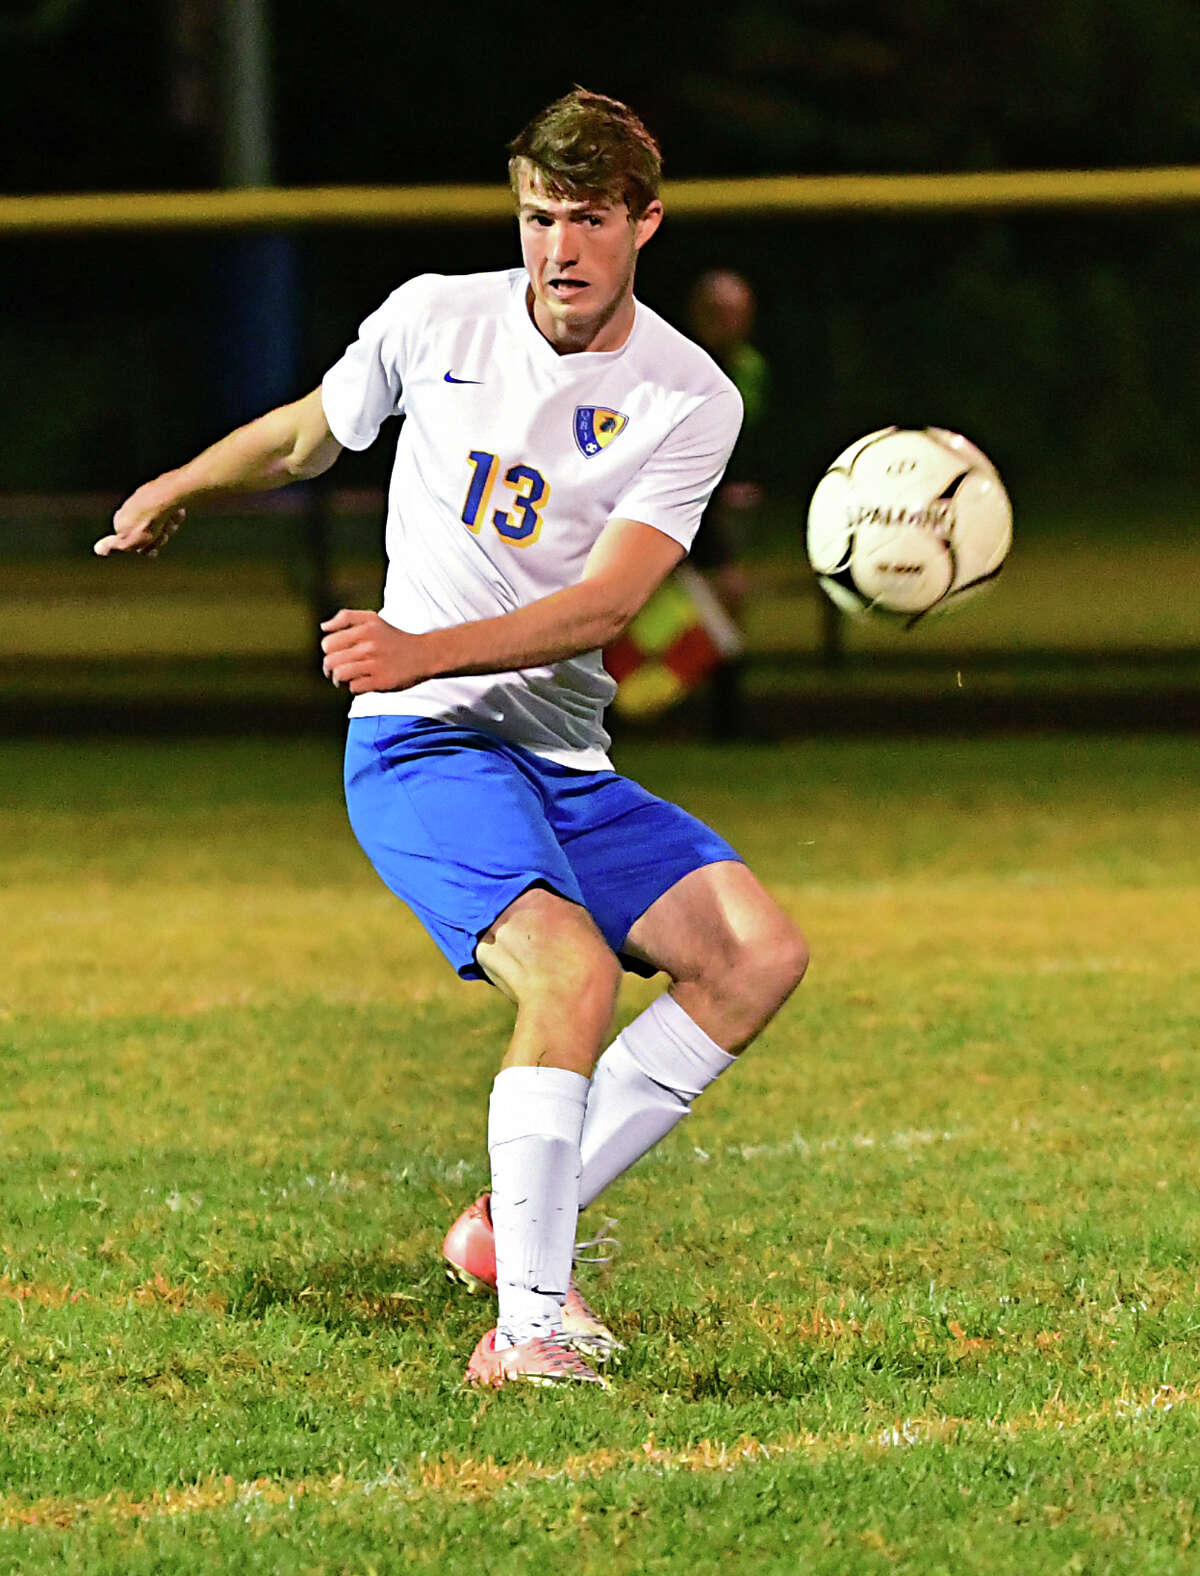 Queensbury's Peter Crawford sends the ball during a soccer game against South Glens Falls on Wednesday, Oct. 2, 2019 in South Glens Falls, N.Y. (Lori Van Buren/Times Union)